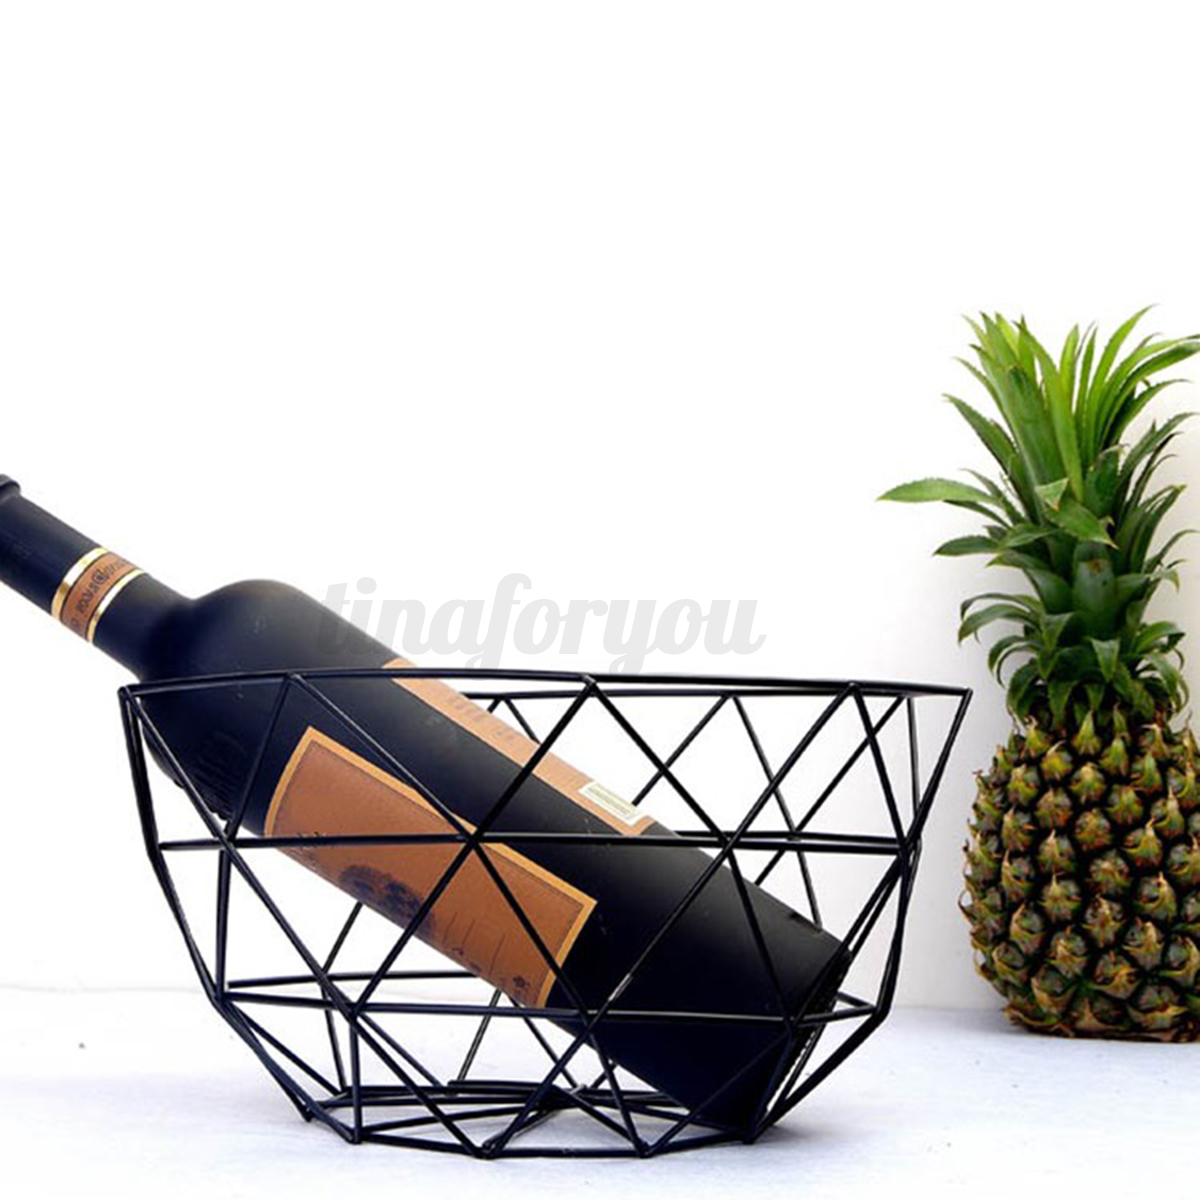 Designer Fruit Basket Geometric Metal Wire Decorative Storage Display Basket